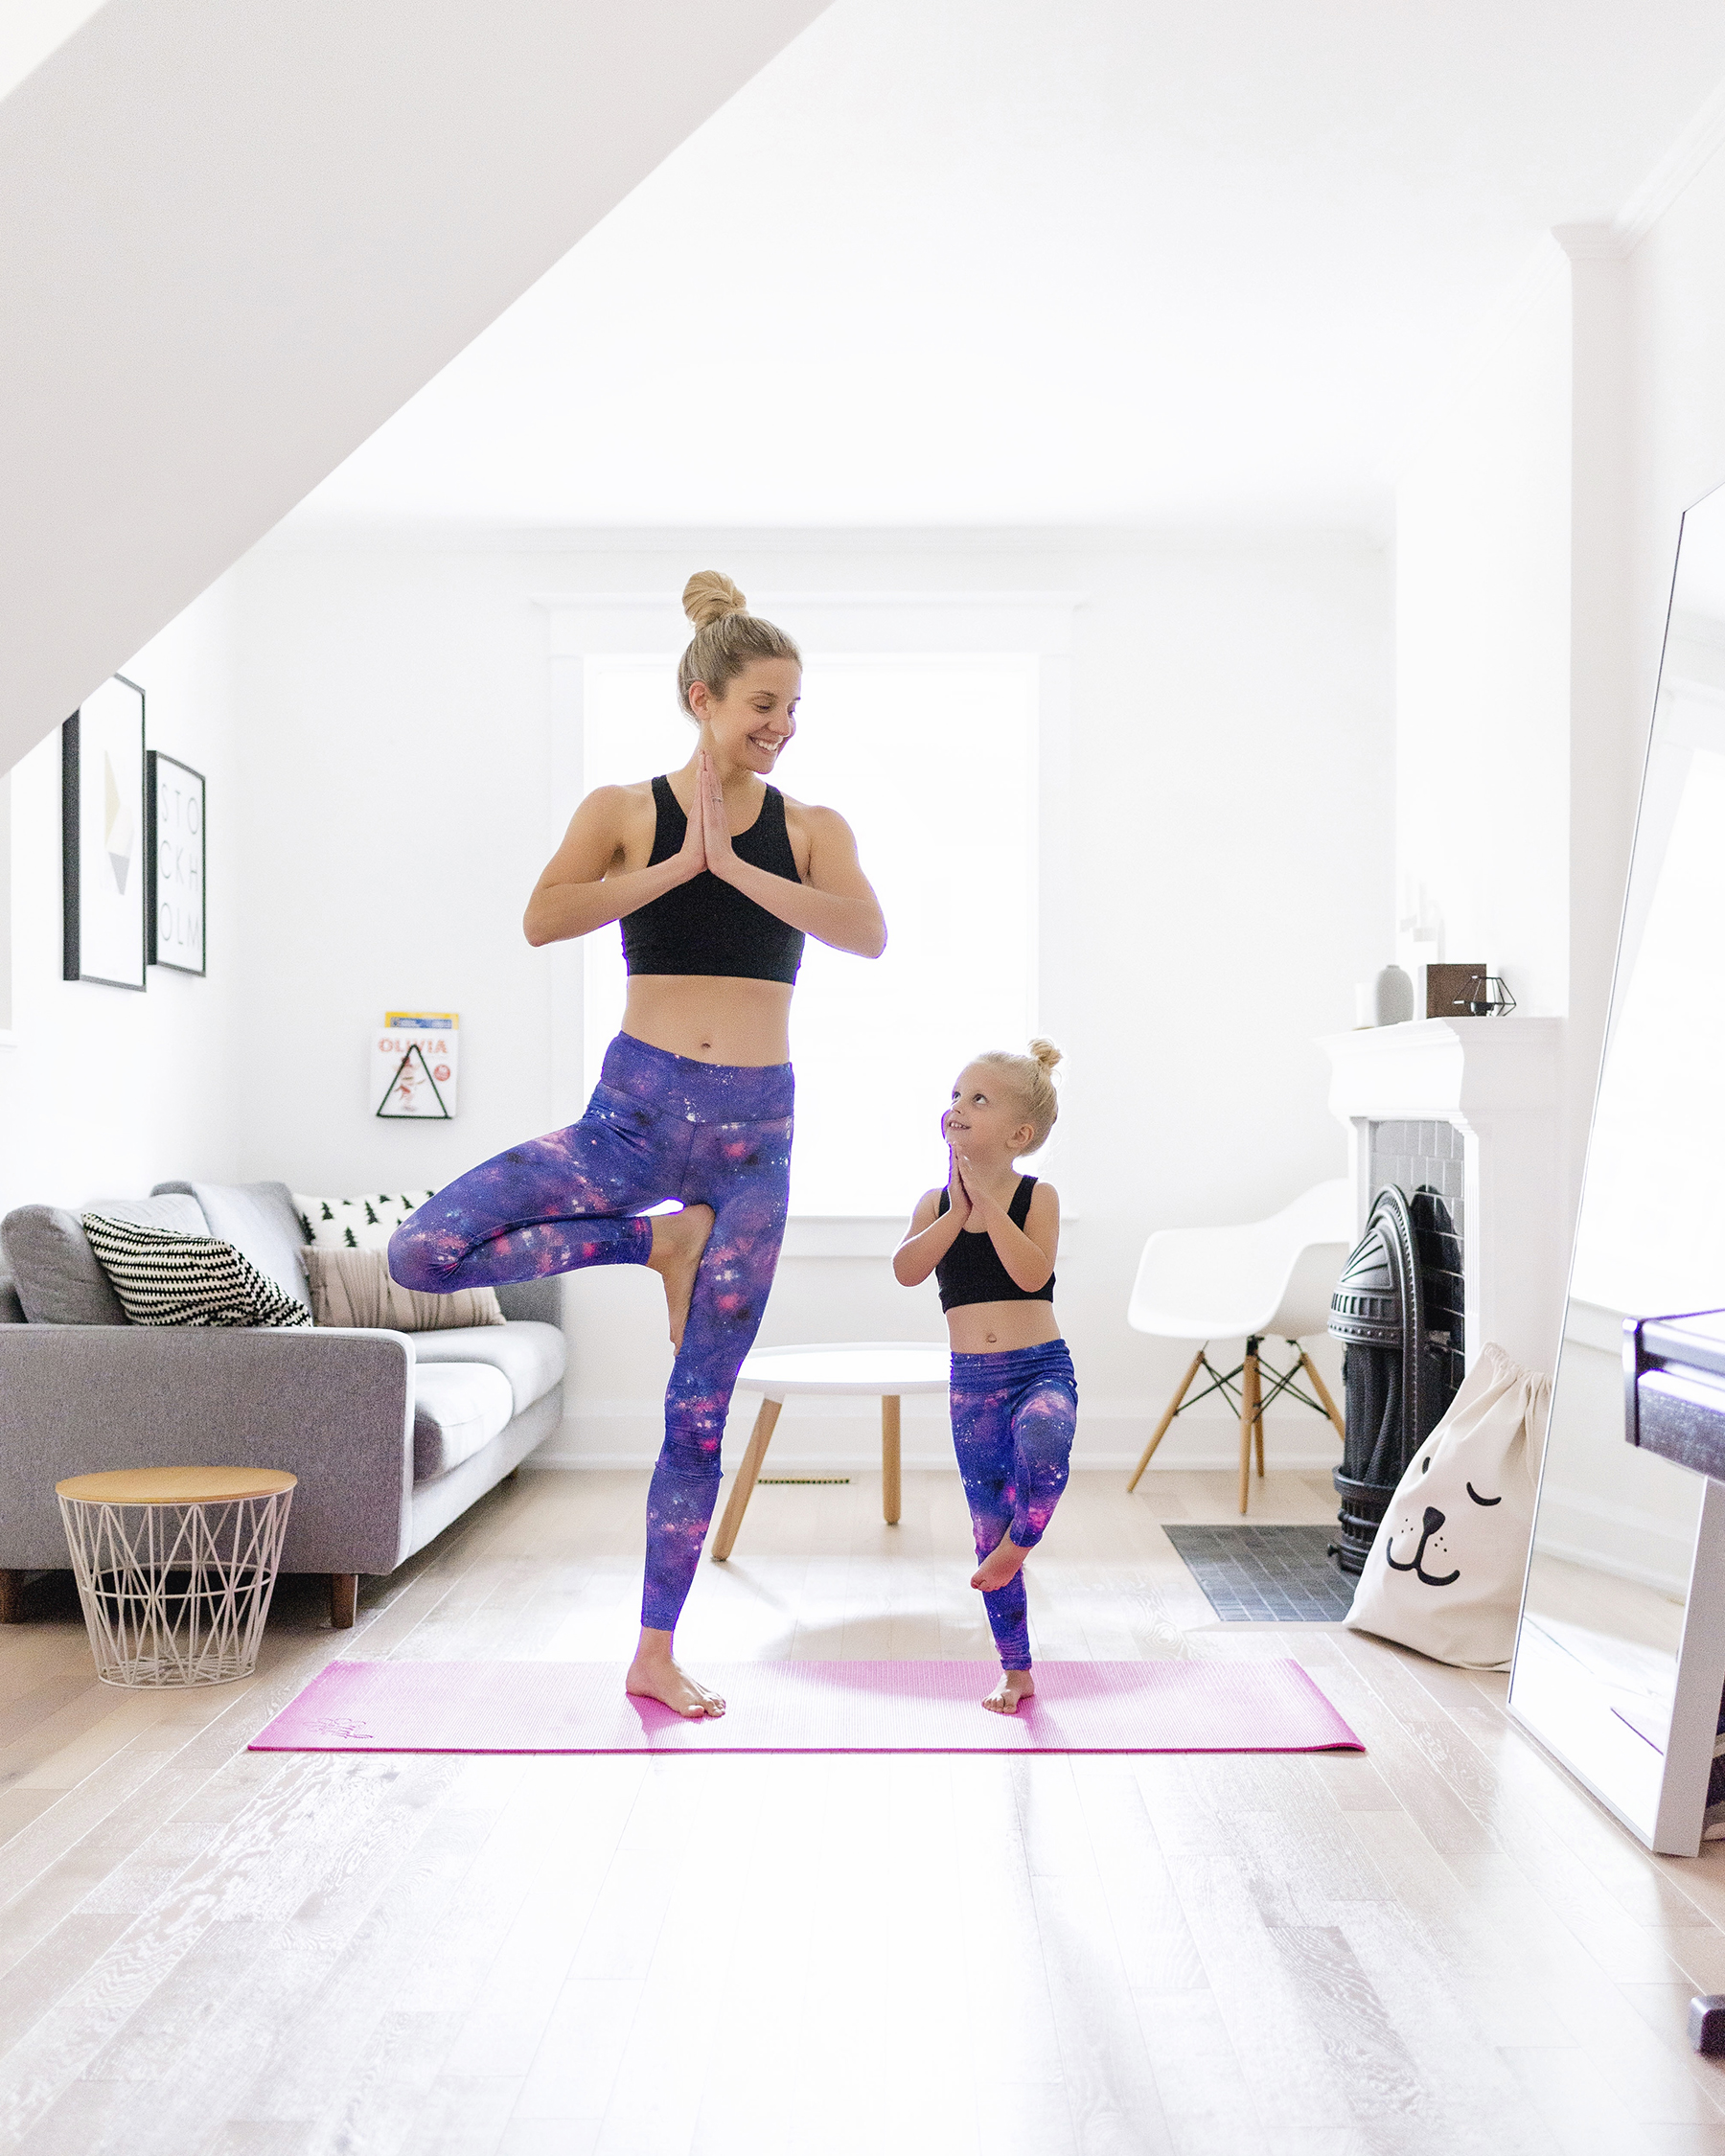 5 Tips For Practicing Yoga With Young Kids